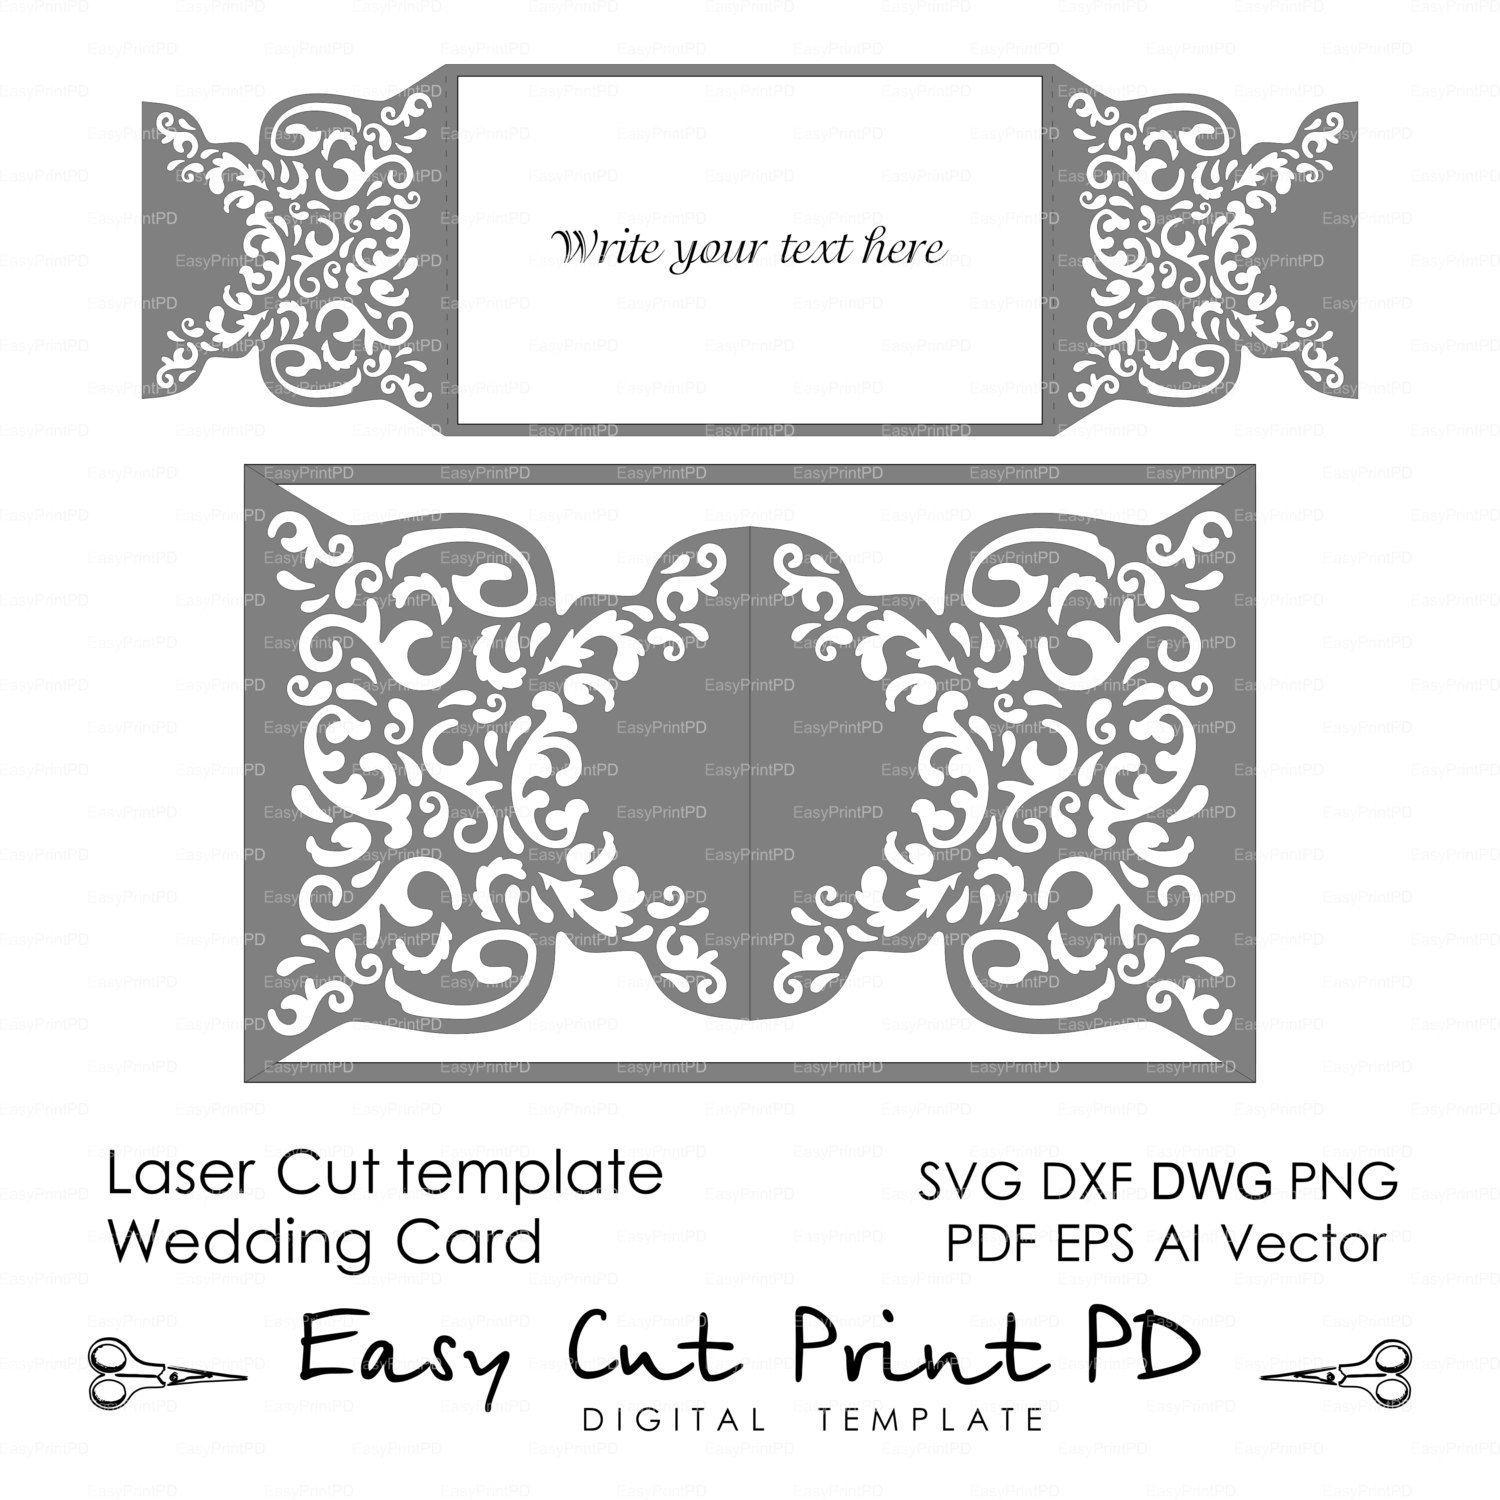 wedding invitation pattern card template shutters gates doors lace wedding invitation pattern card template shutters gates doors lace folds svg dxf ai eps png